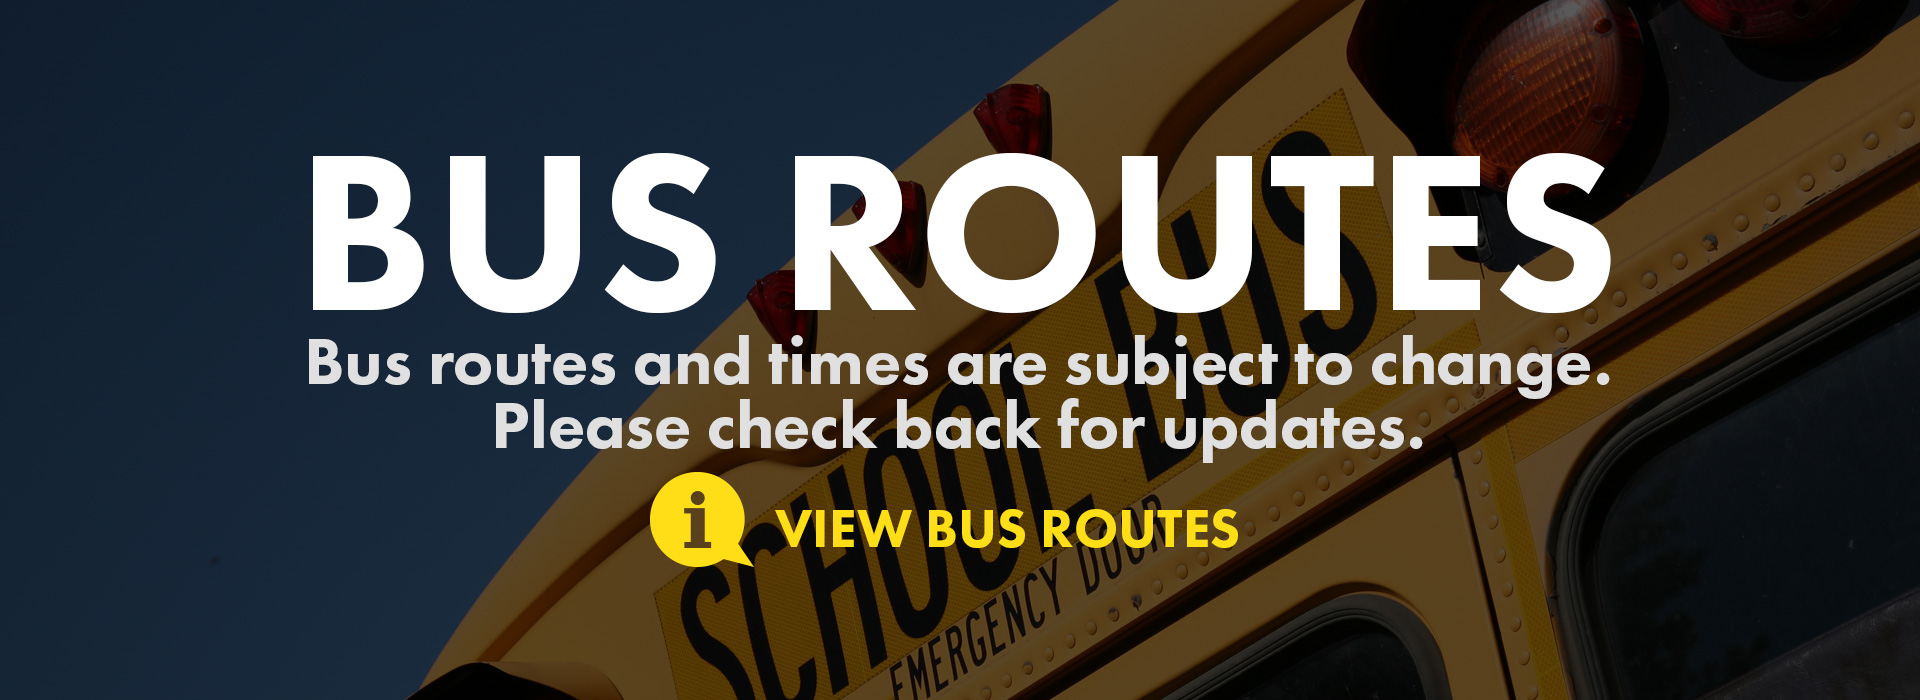 bus routes and time